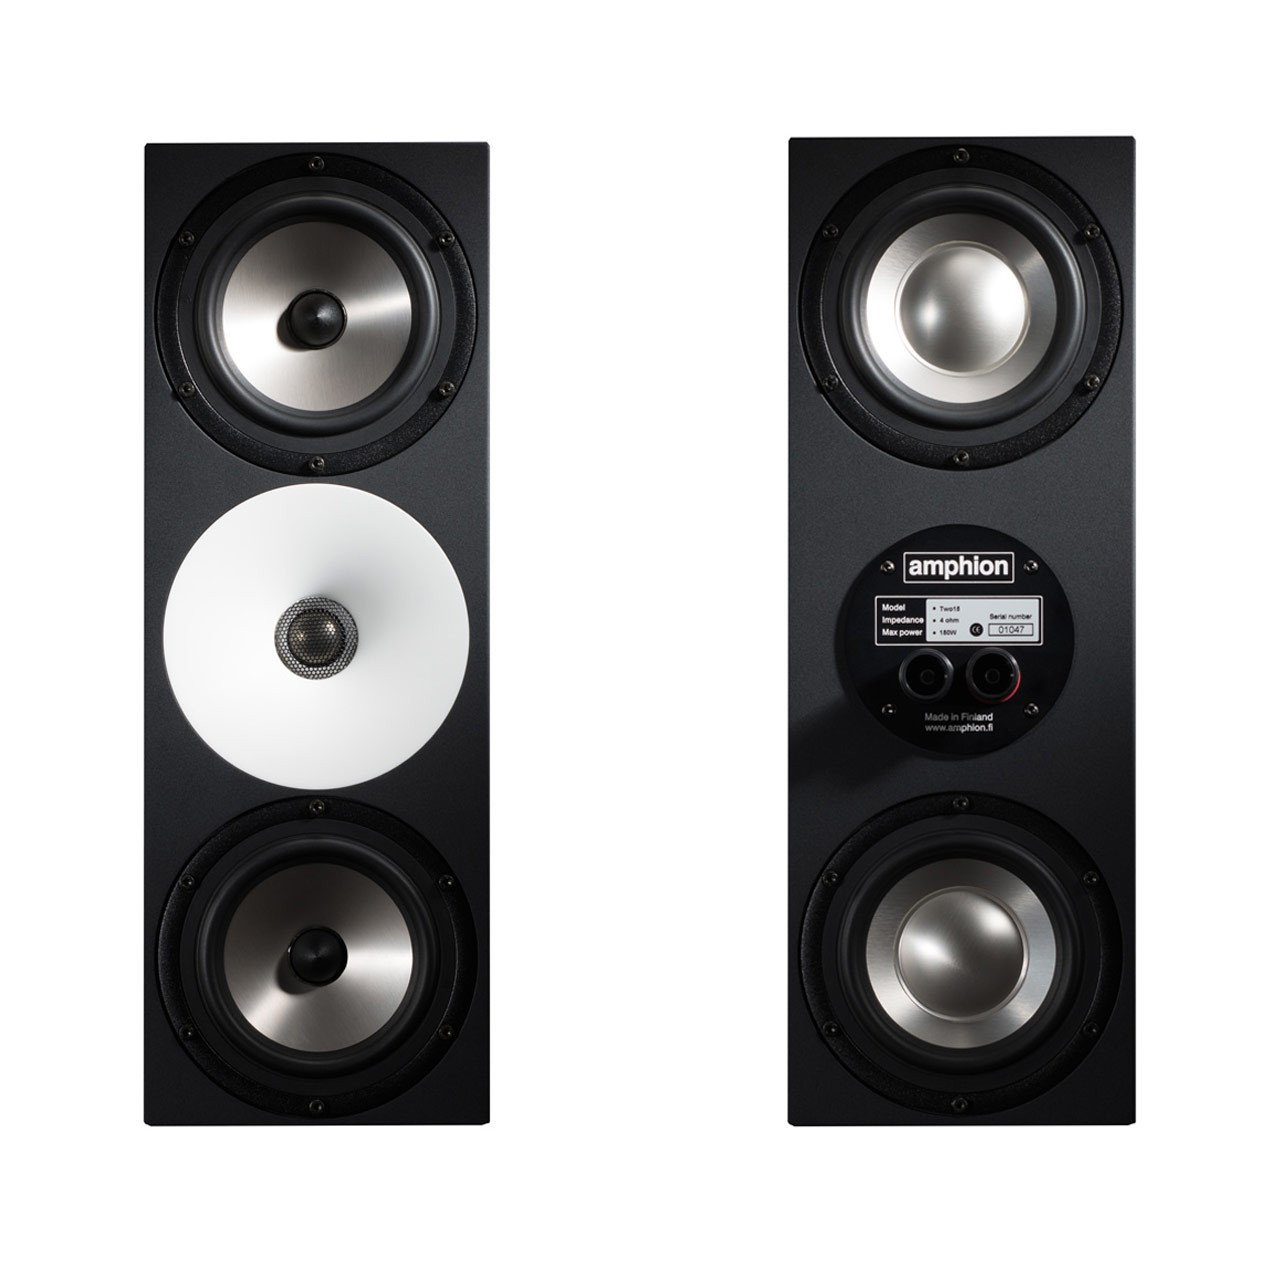 Amphion two15 Passive 2-way Studio Monitors (PAIR)